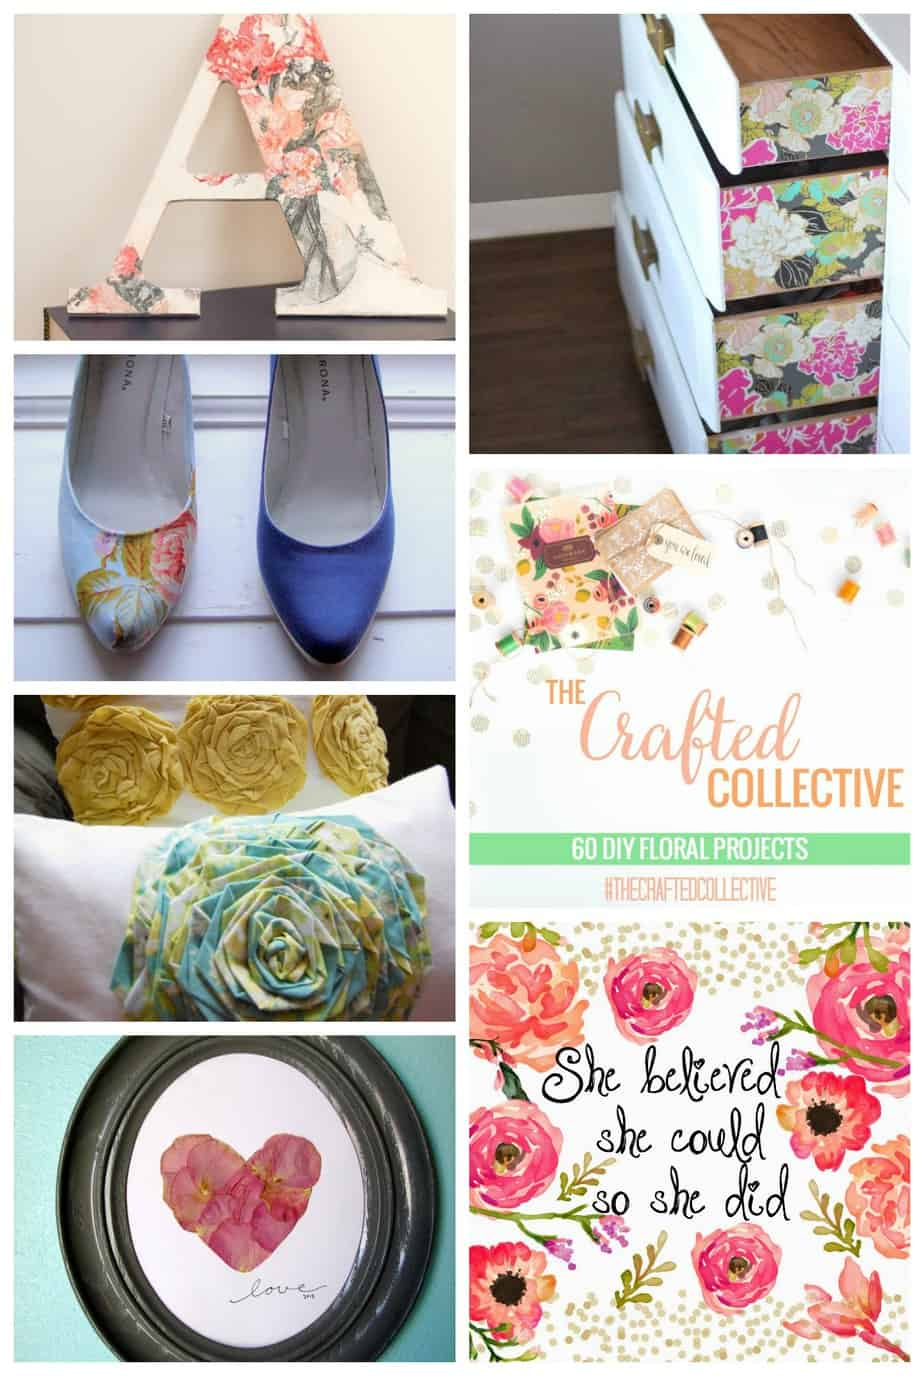 The Crafted Collective Floral Projects